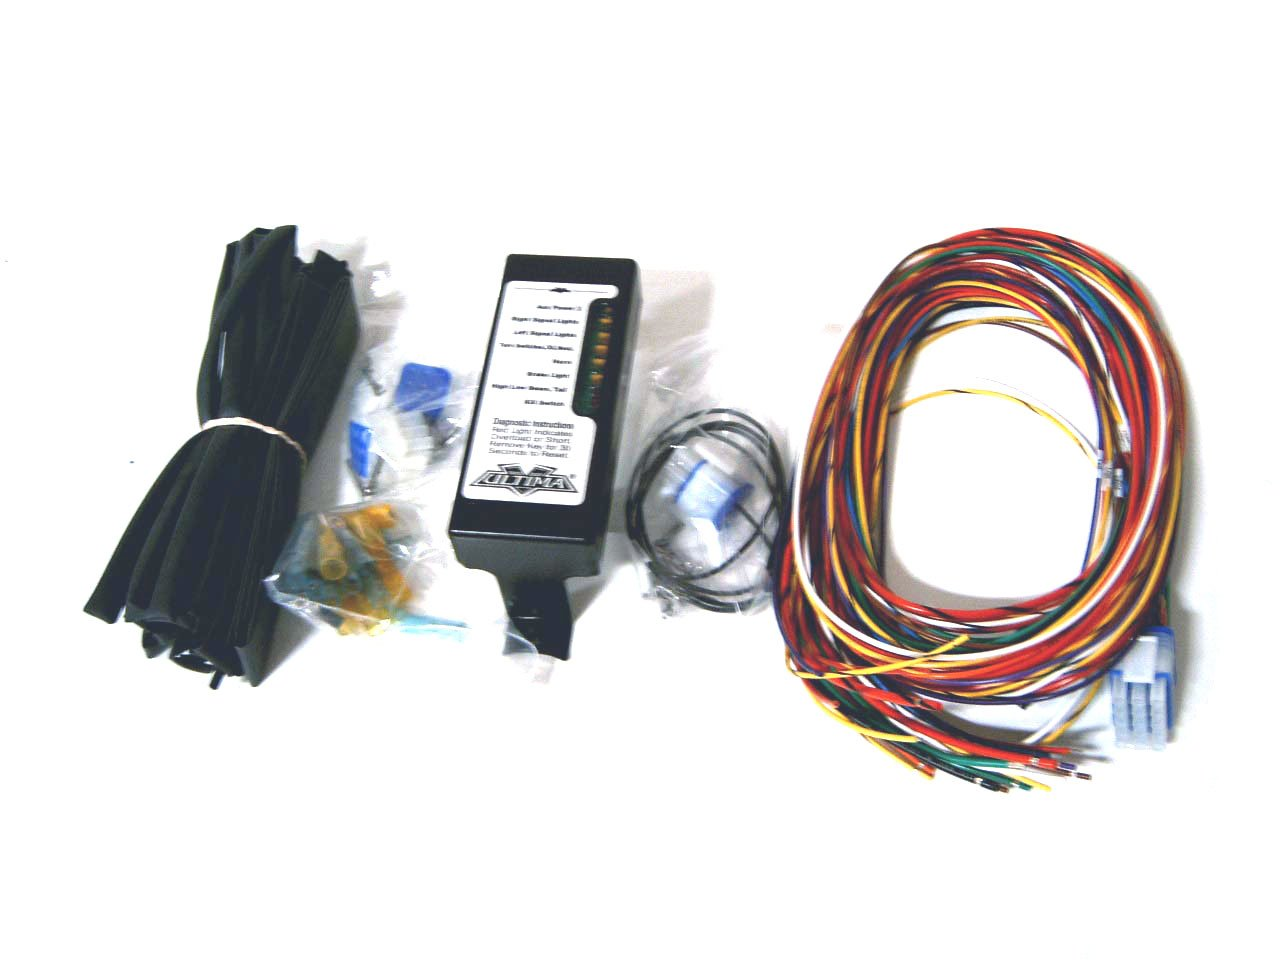 61DV2Bq5%2BHL._SL1280_ amazon com ultima complete wiring harness kit for harley davidson harley wiring harness kits at creativeand.co